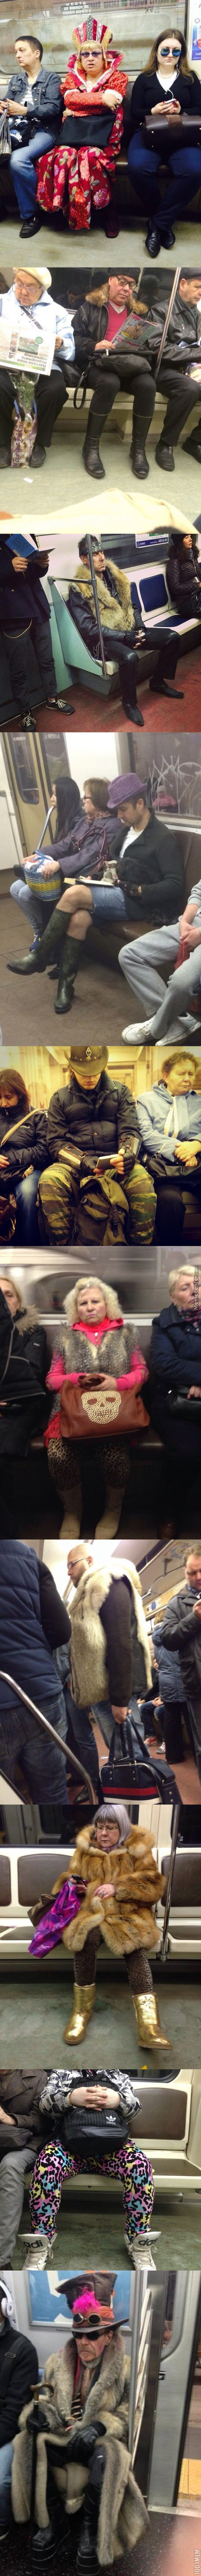 Meanwhile In Russian Subway